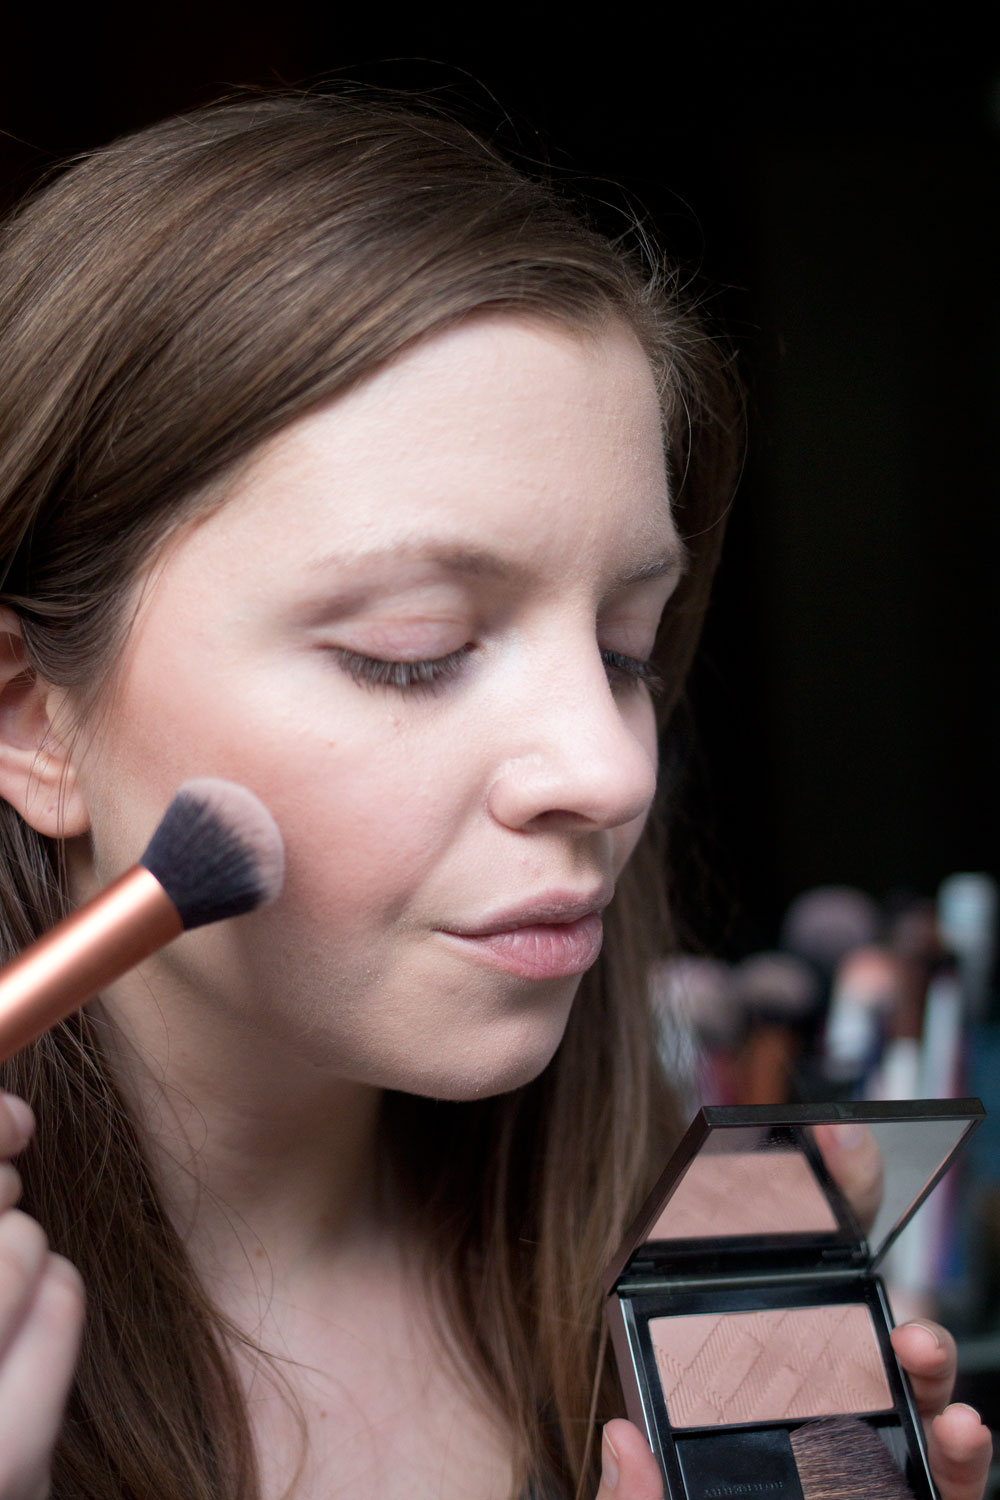 Burberry Beauty Light Glow Blush in Earthy Review // Hello Rigby Seattle Beauty Blog